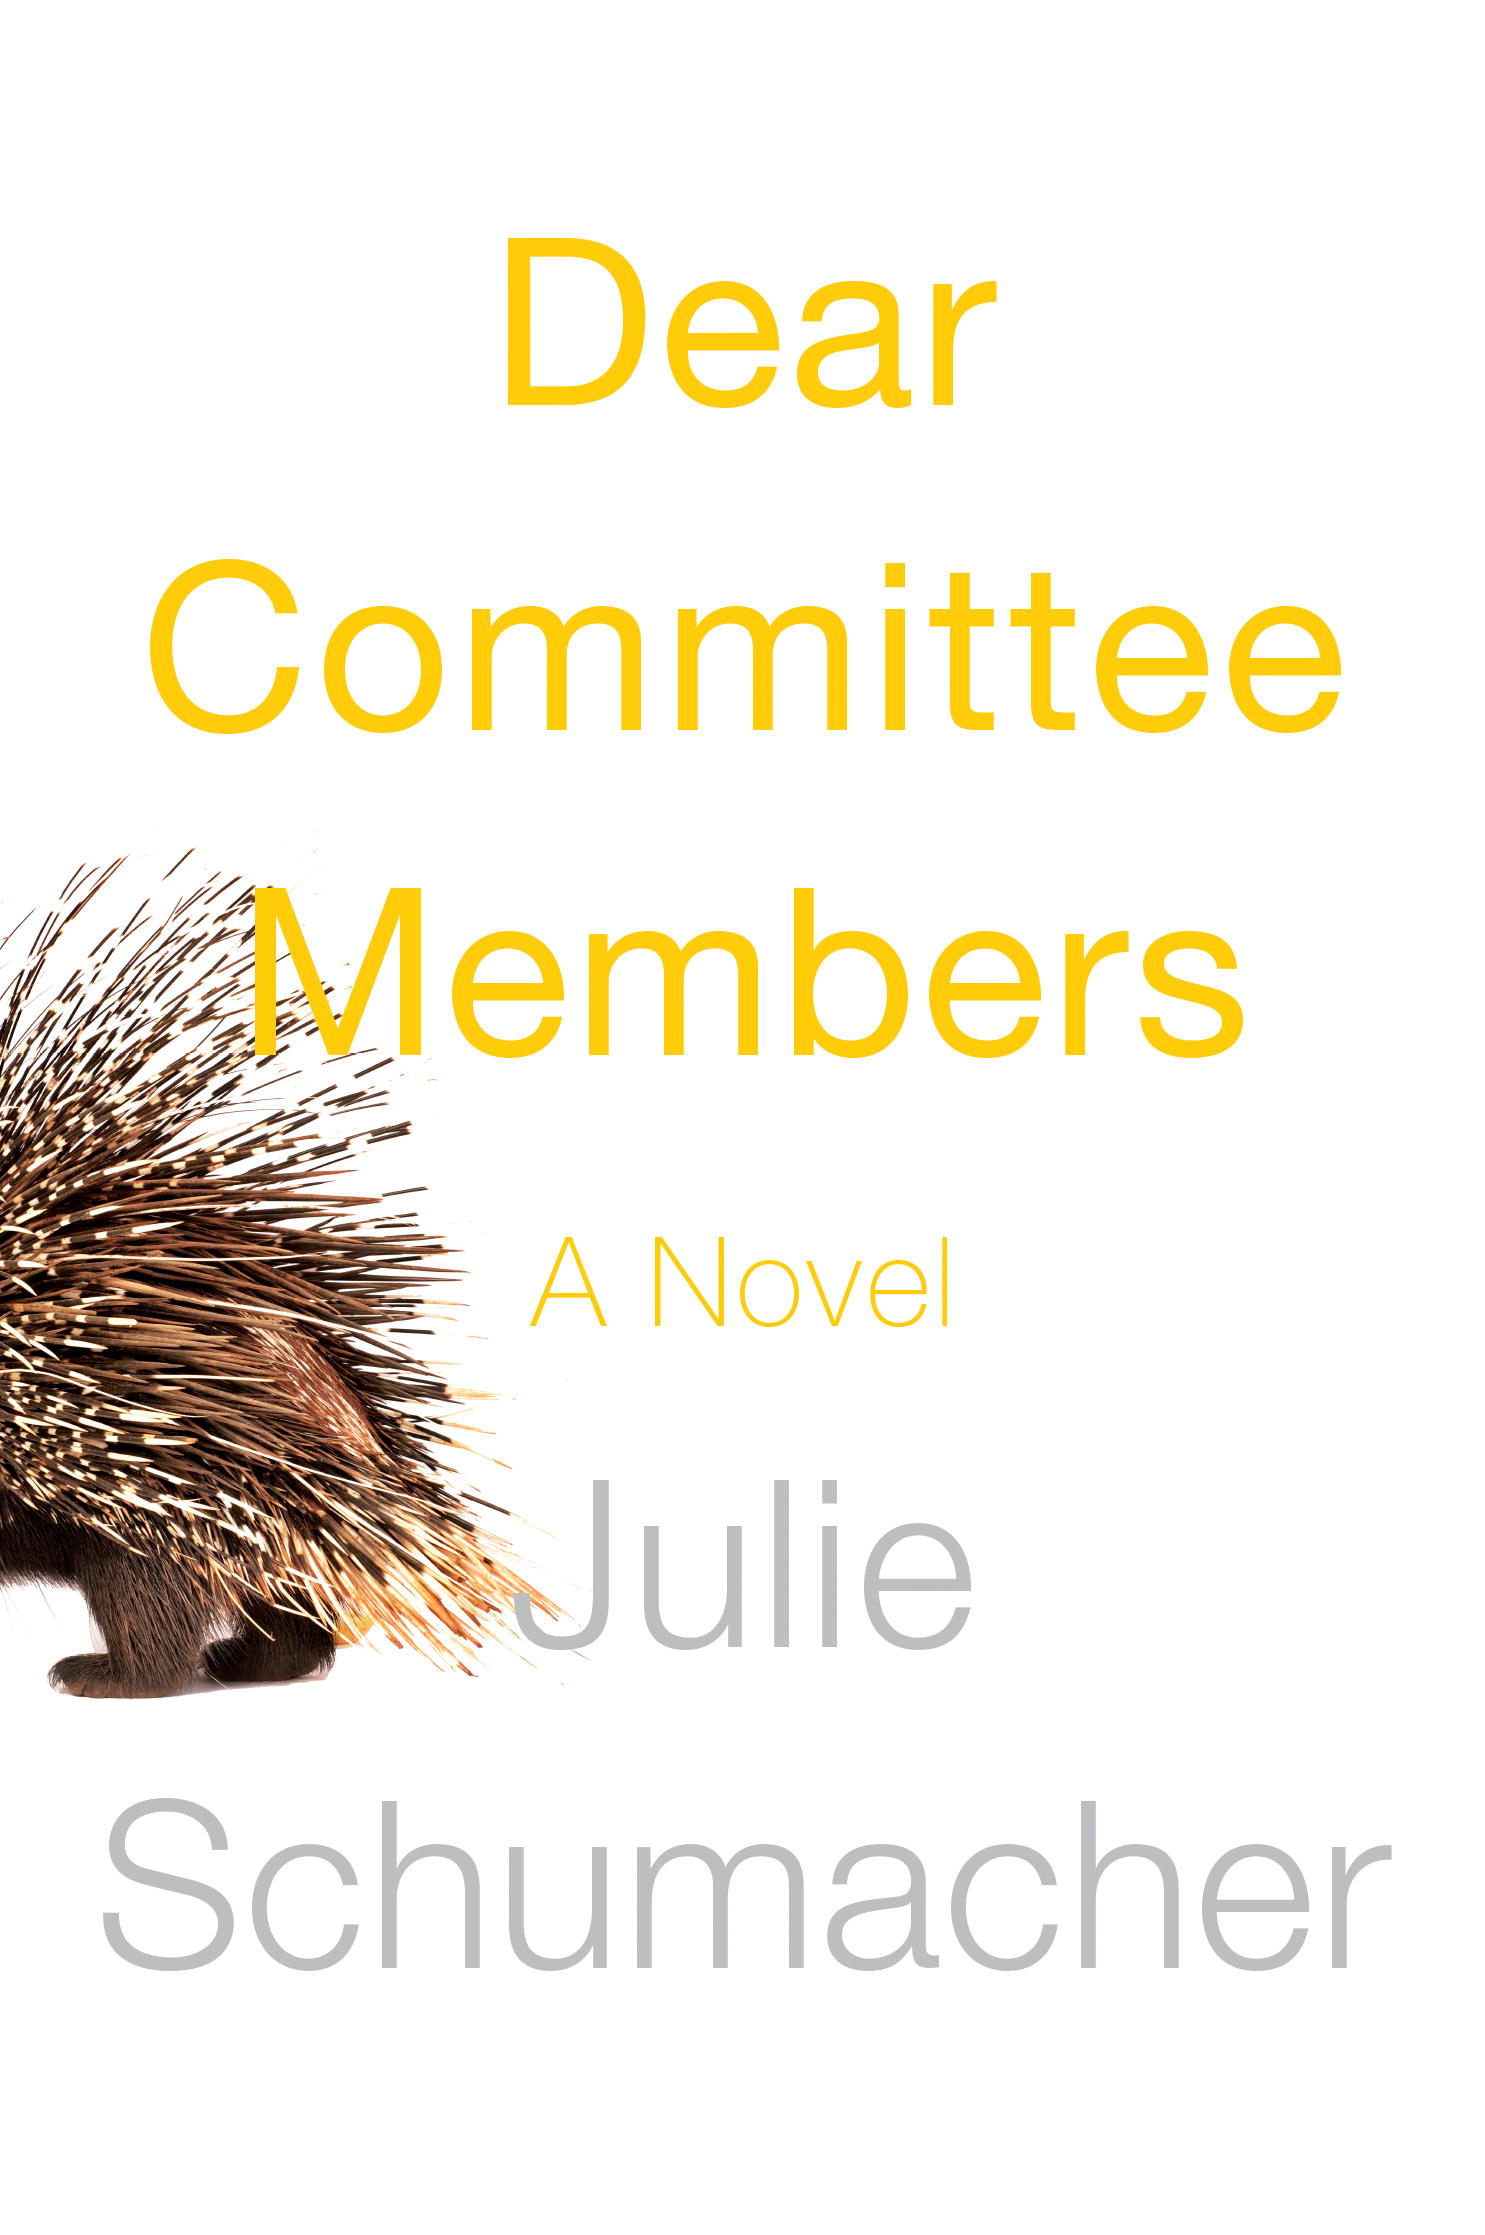 what to say to a porcupine 20 humorous tales that get to the heart of great customer service